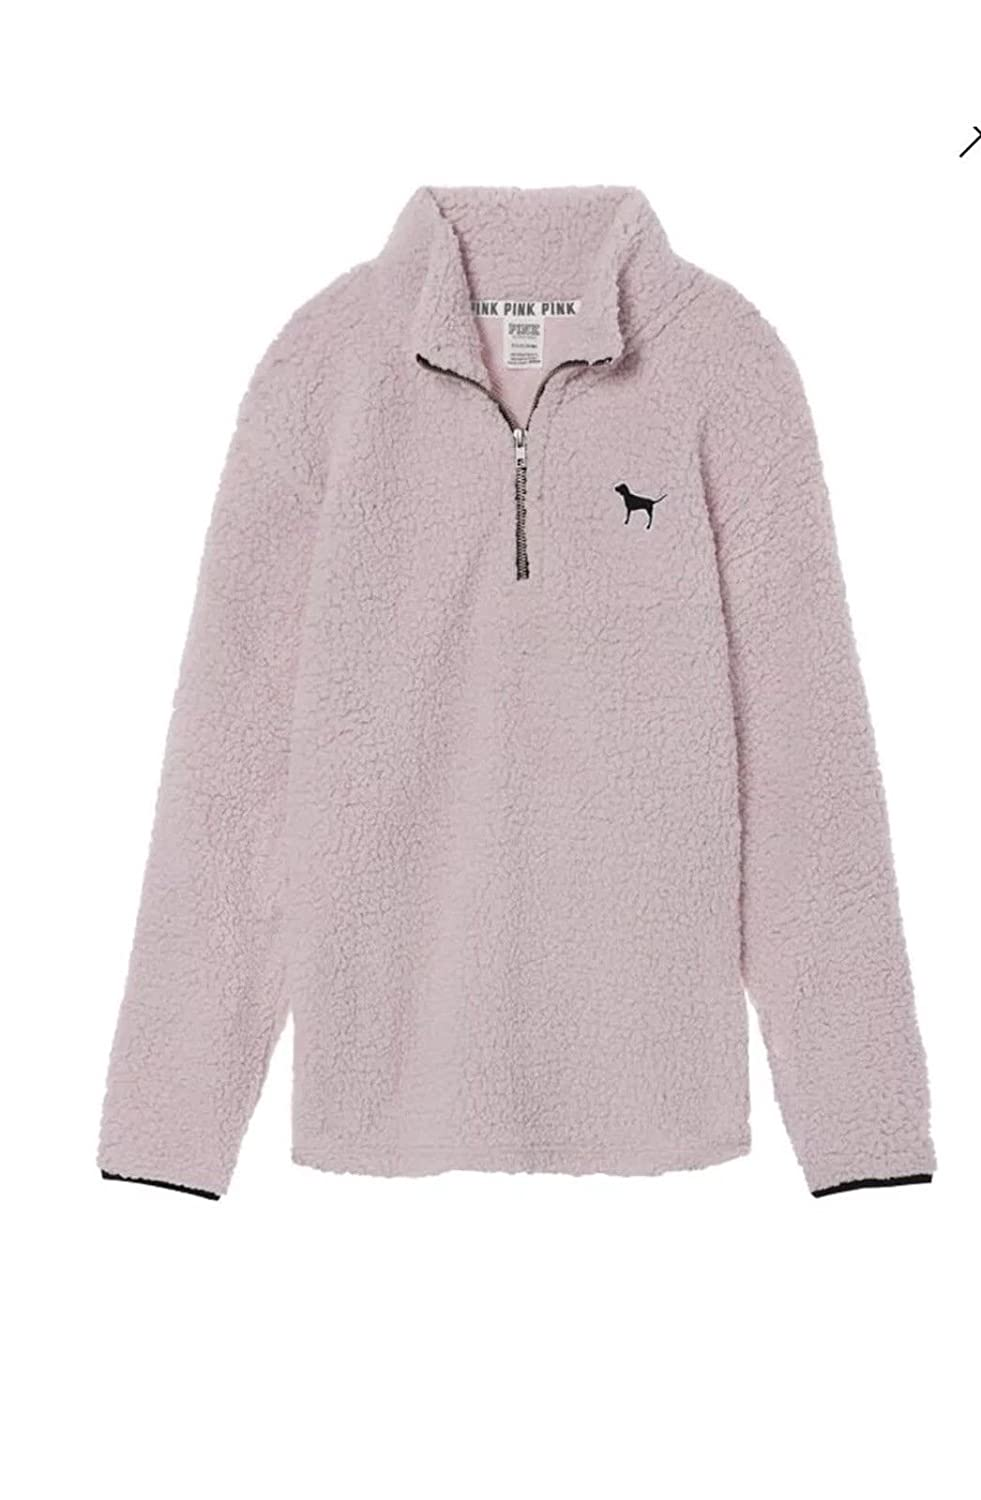 Victoria s Secret Pink Sherpa Boyfriend Quarter Zip Pullover Soft Pink- XS  at Amazon Women s Clothing store  17d53a678